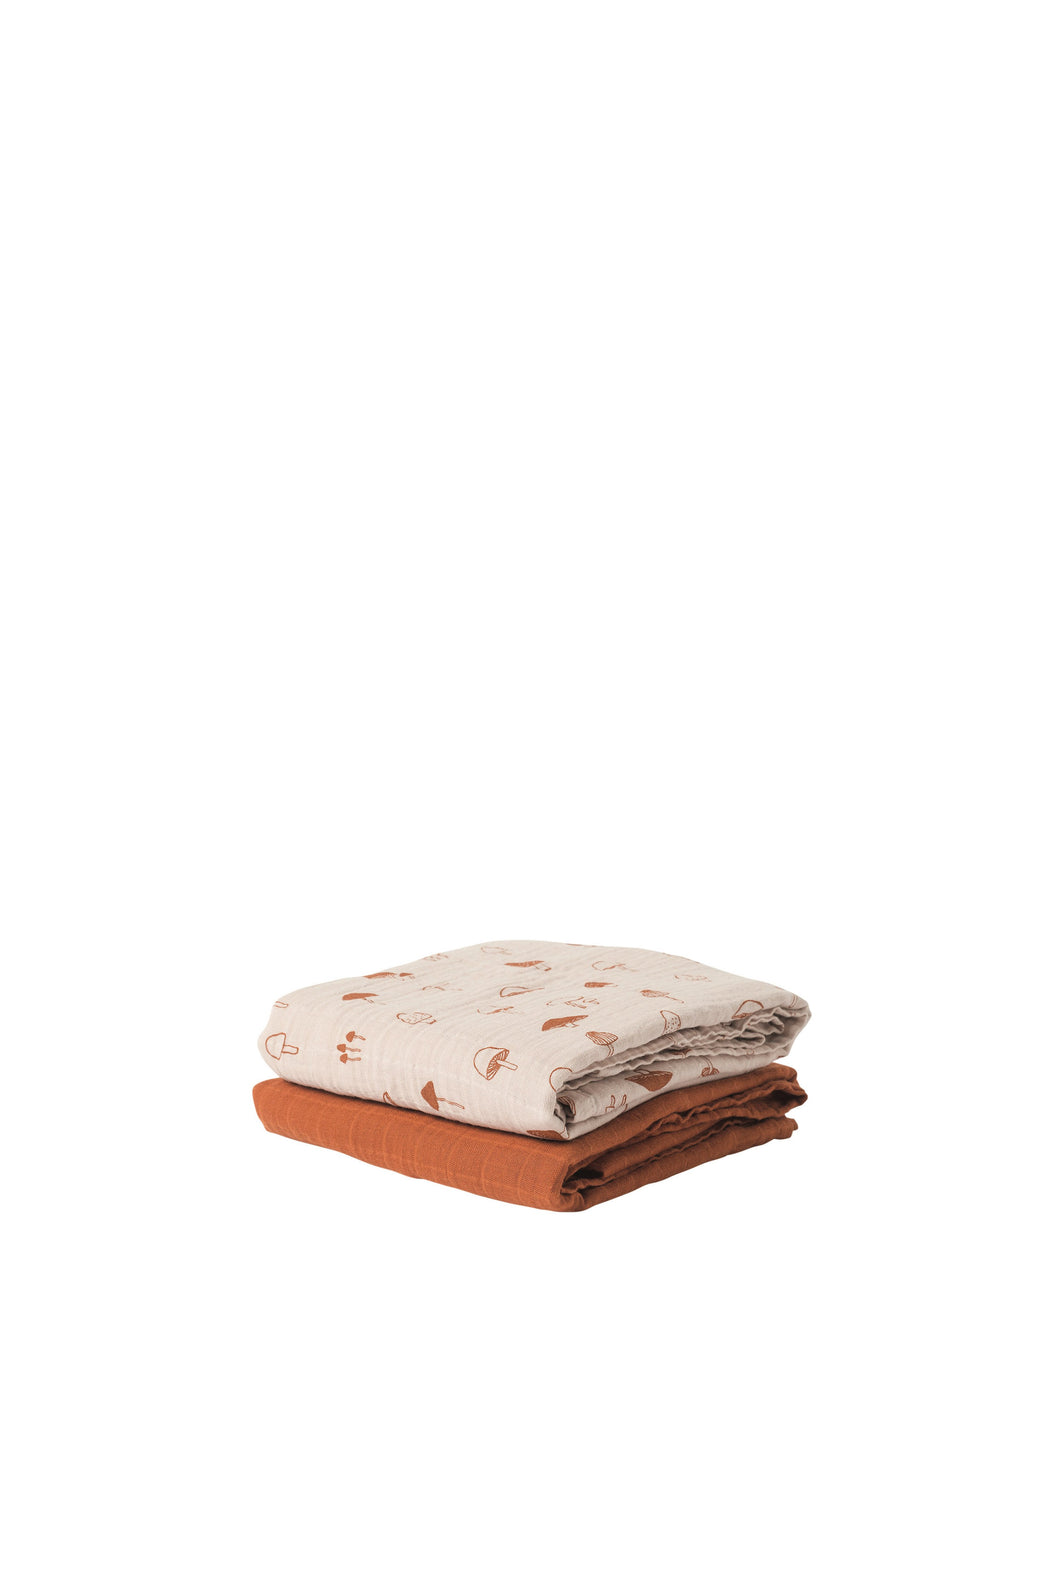 Mushroom Organic Cotton Muslin Wrap Assorted Set of 2_Chestnut and Nougat